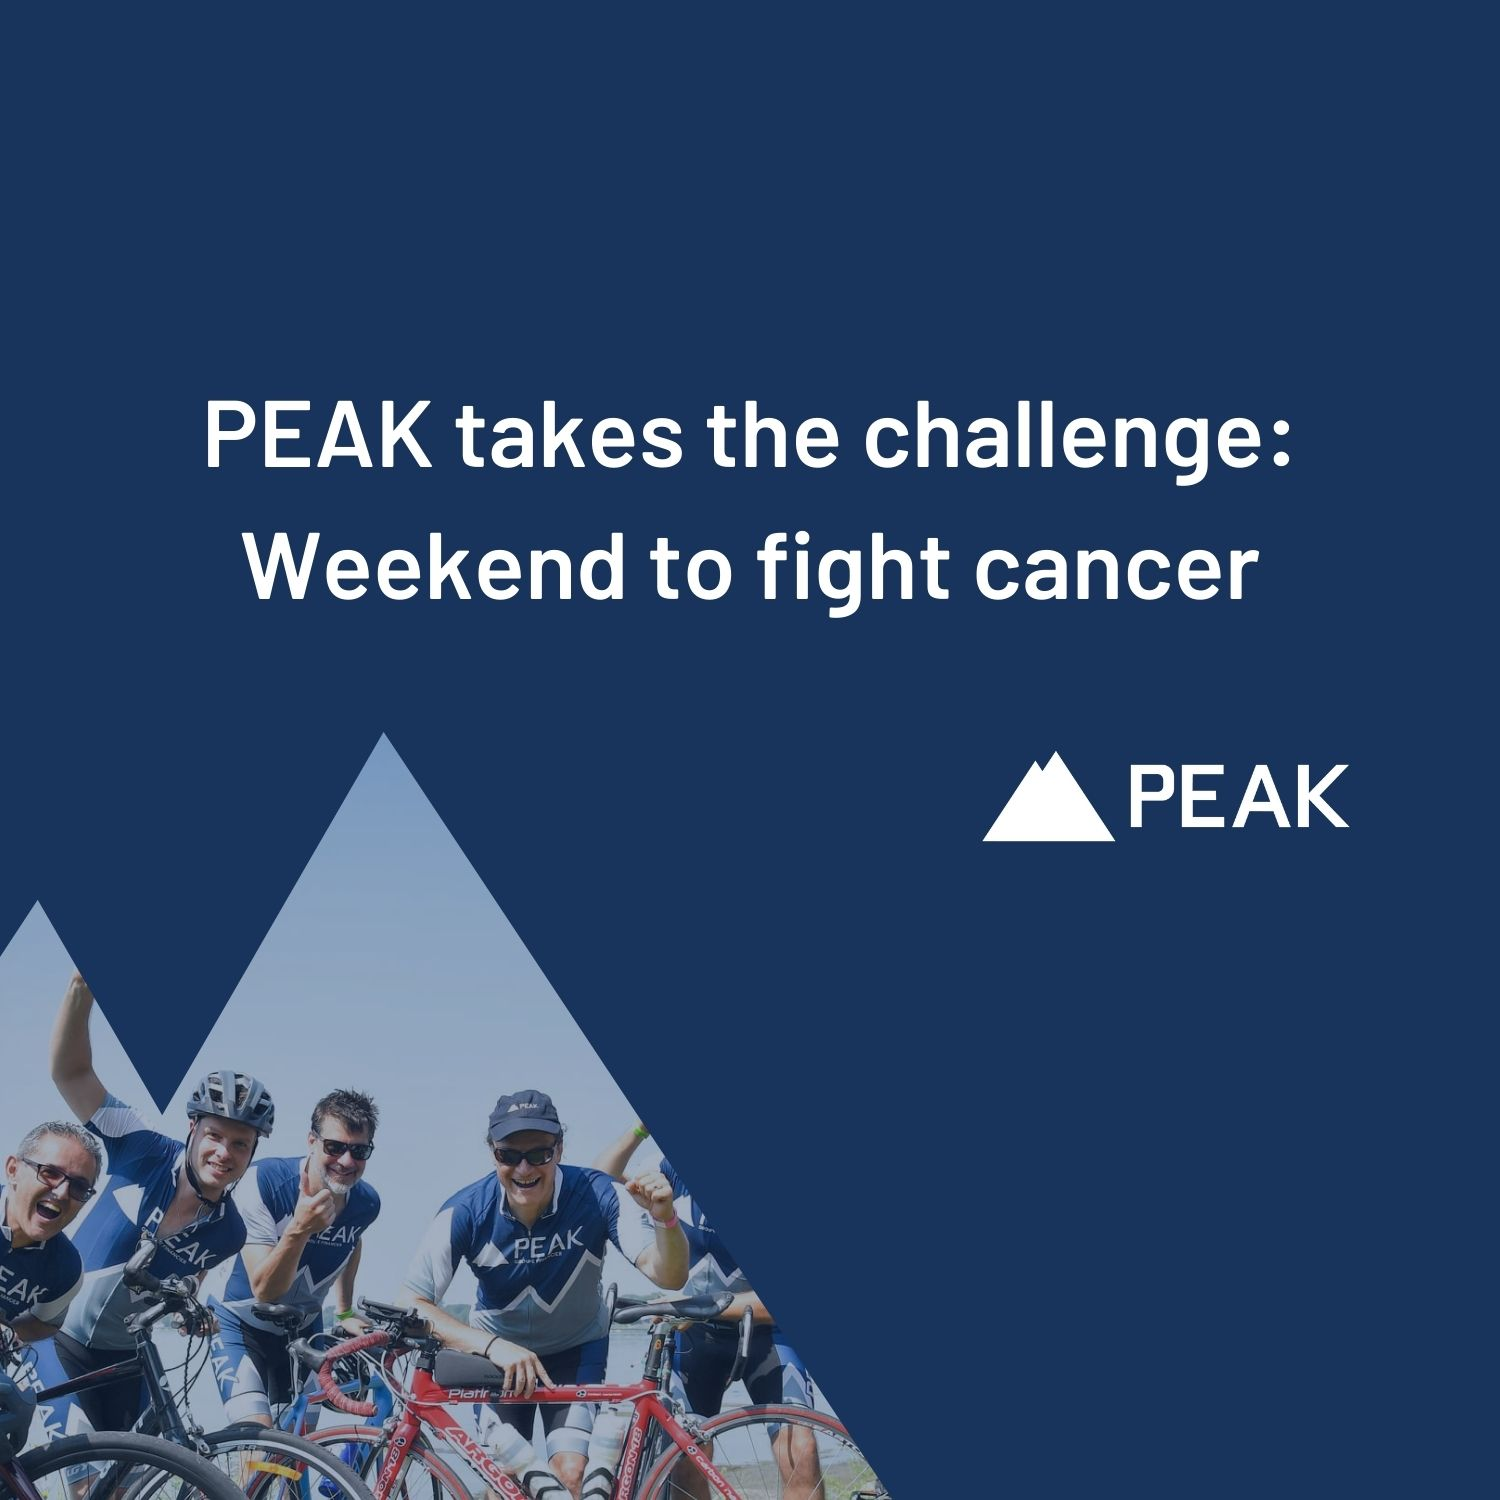 PEAK Takes the Challenge: Weekend to Fight Cancer